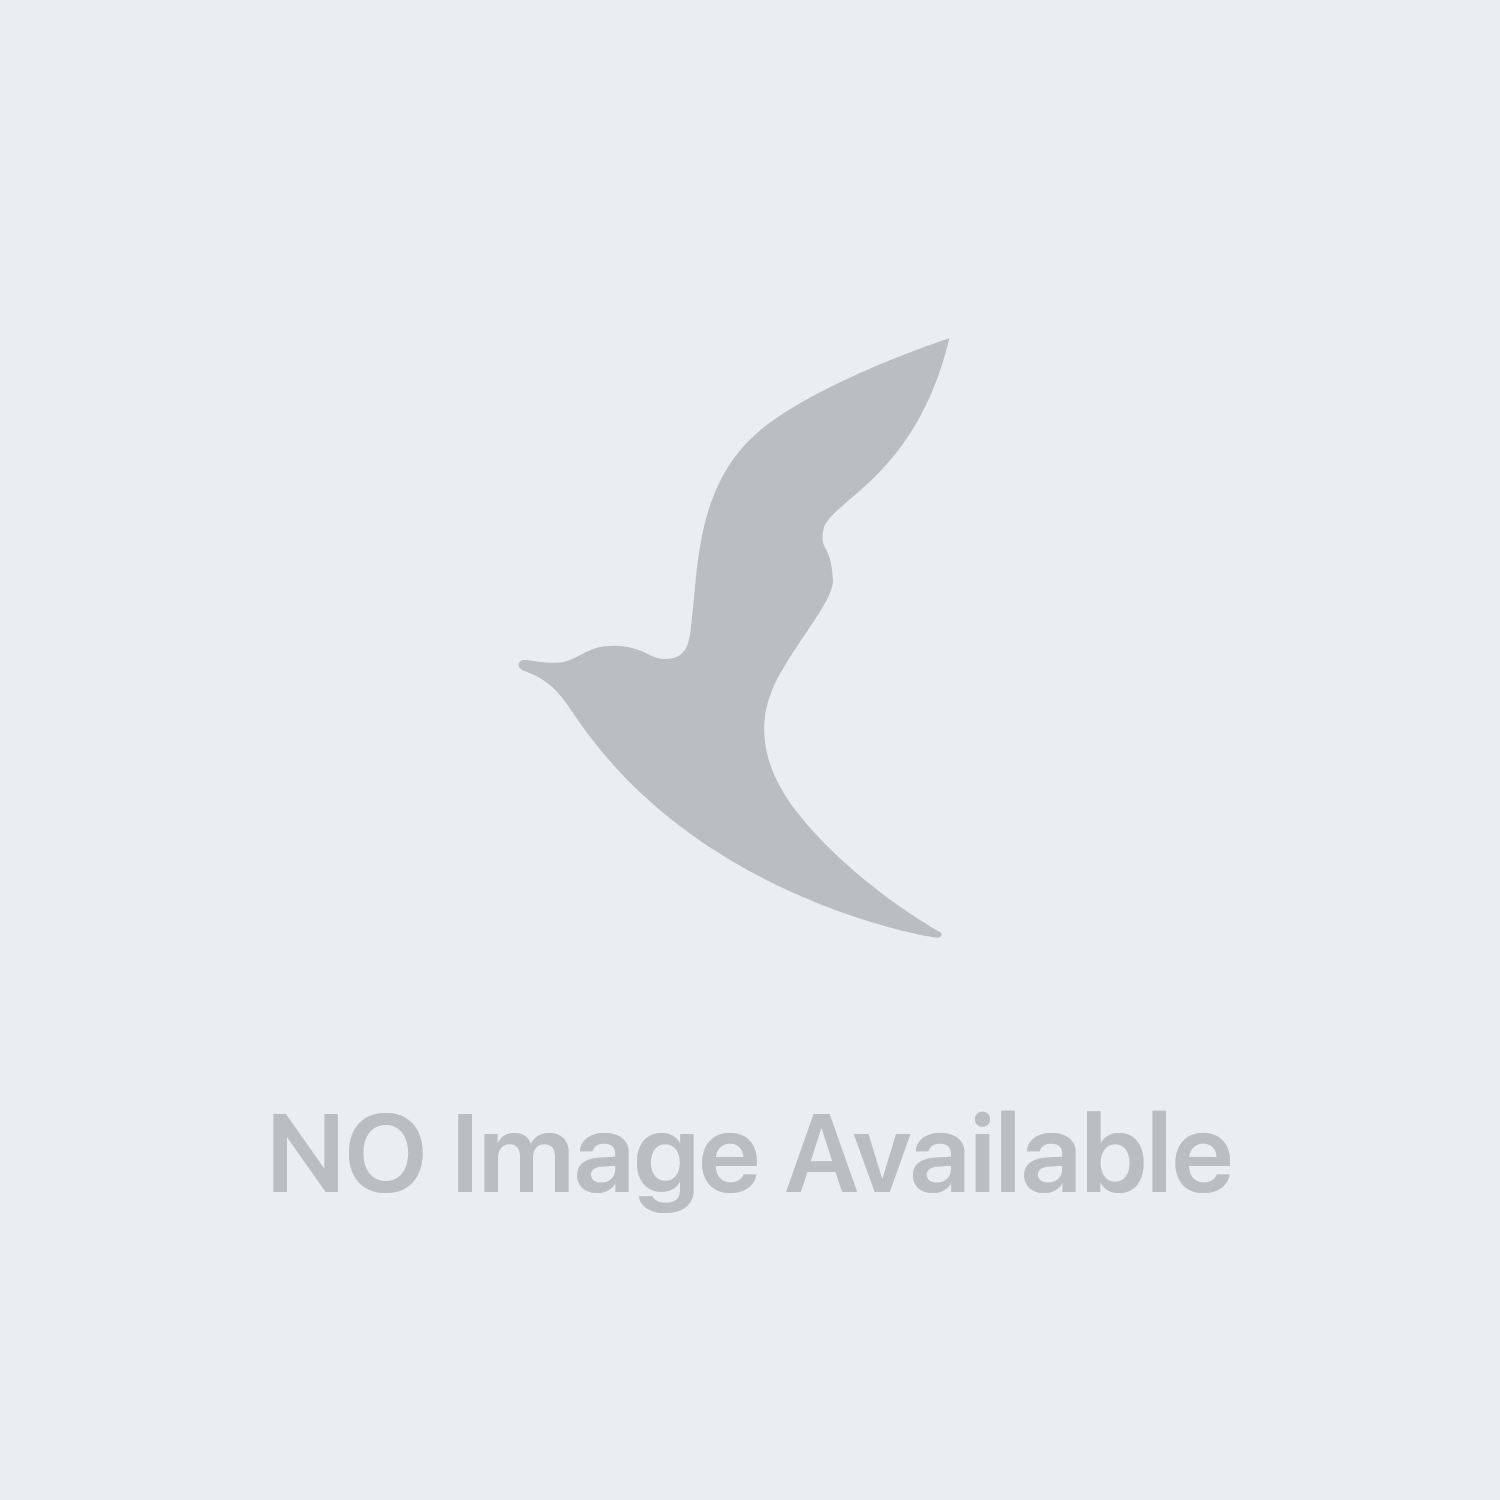 Actifed Decongestionante Spray Nasale 0,05% Naso Chiuso 10 ml